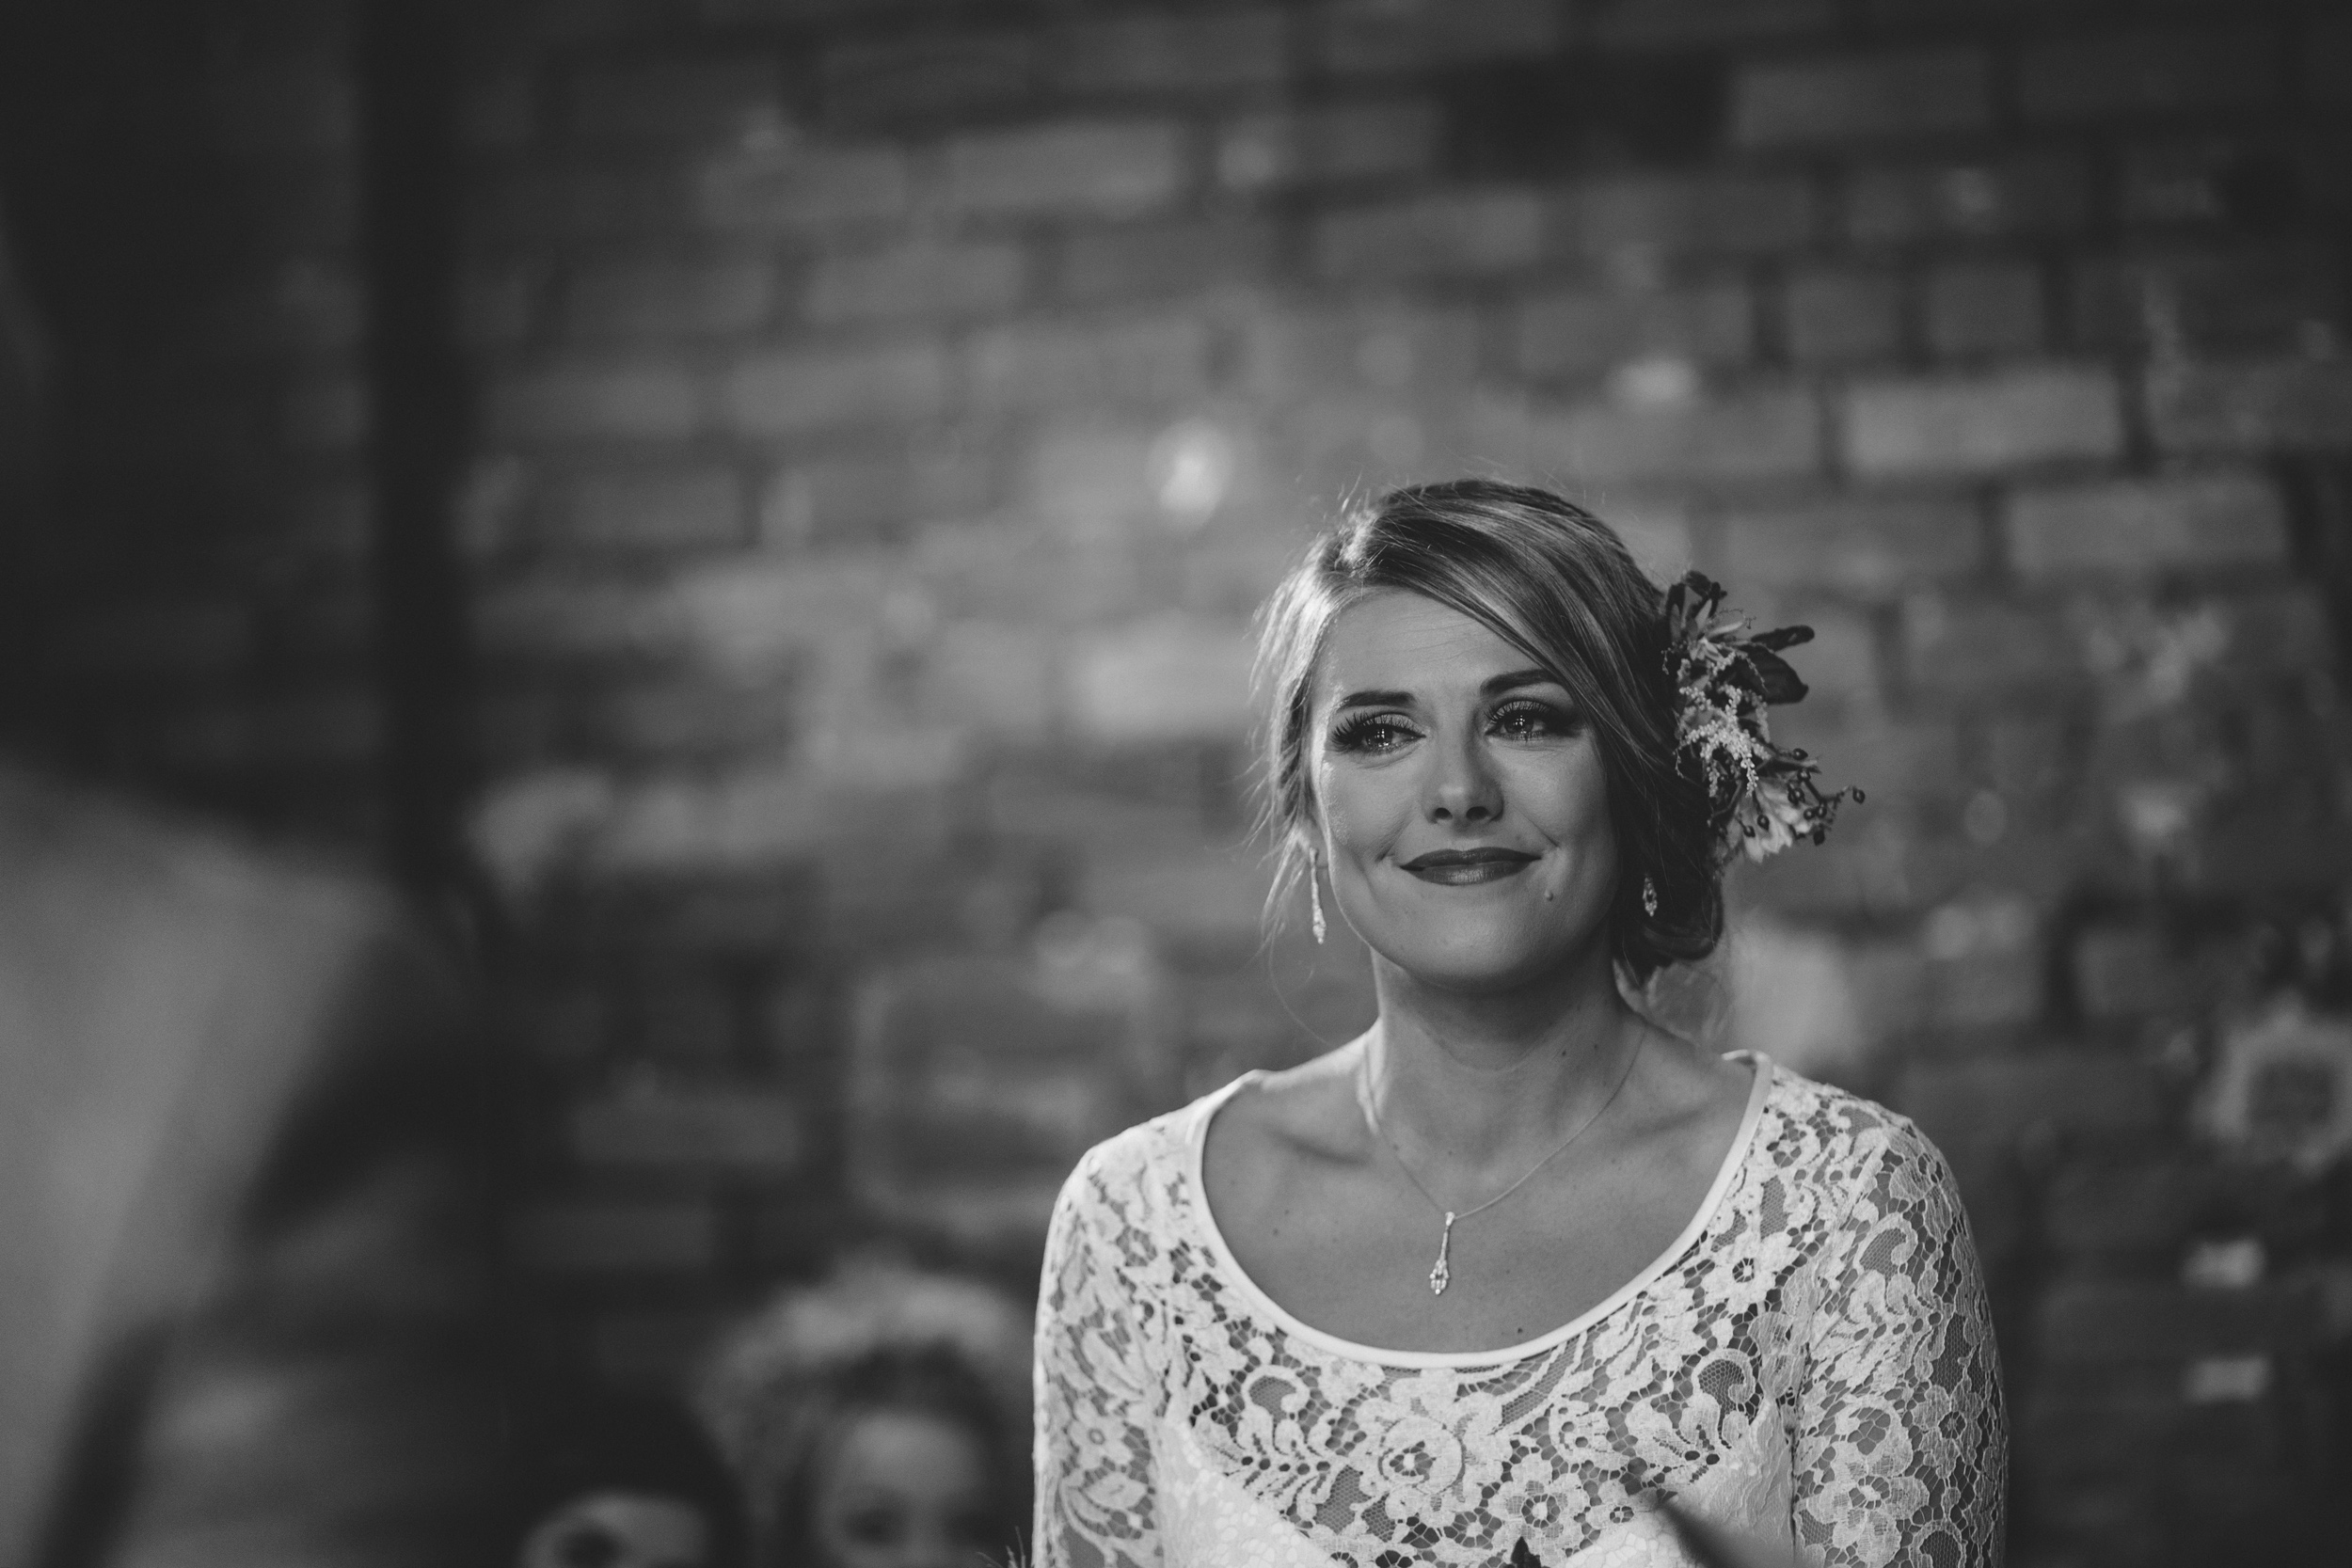 Aimi-Kate-Beaumont-Lace-Wedding-Dress-Sheffield-Kindred-Photography-9.jpg